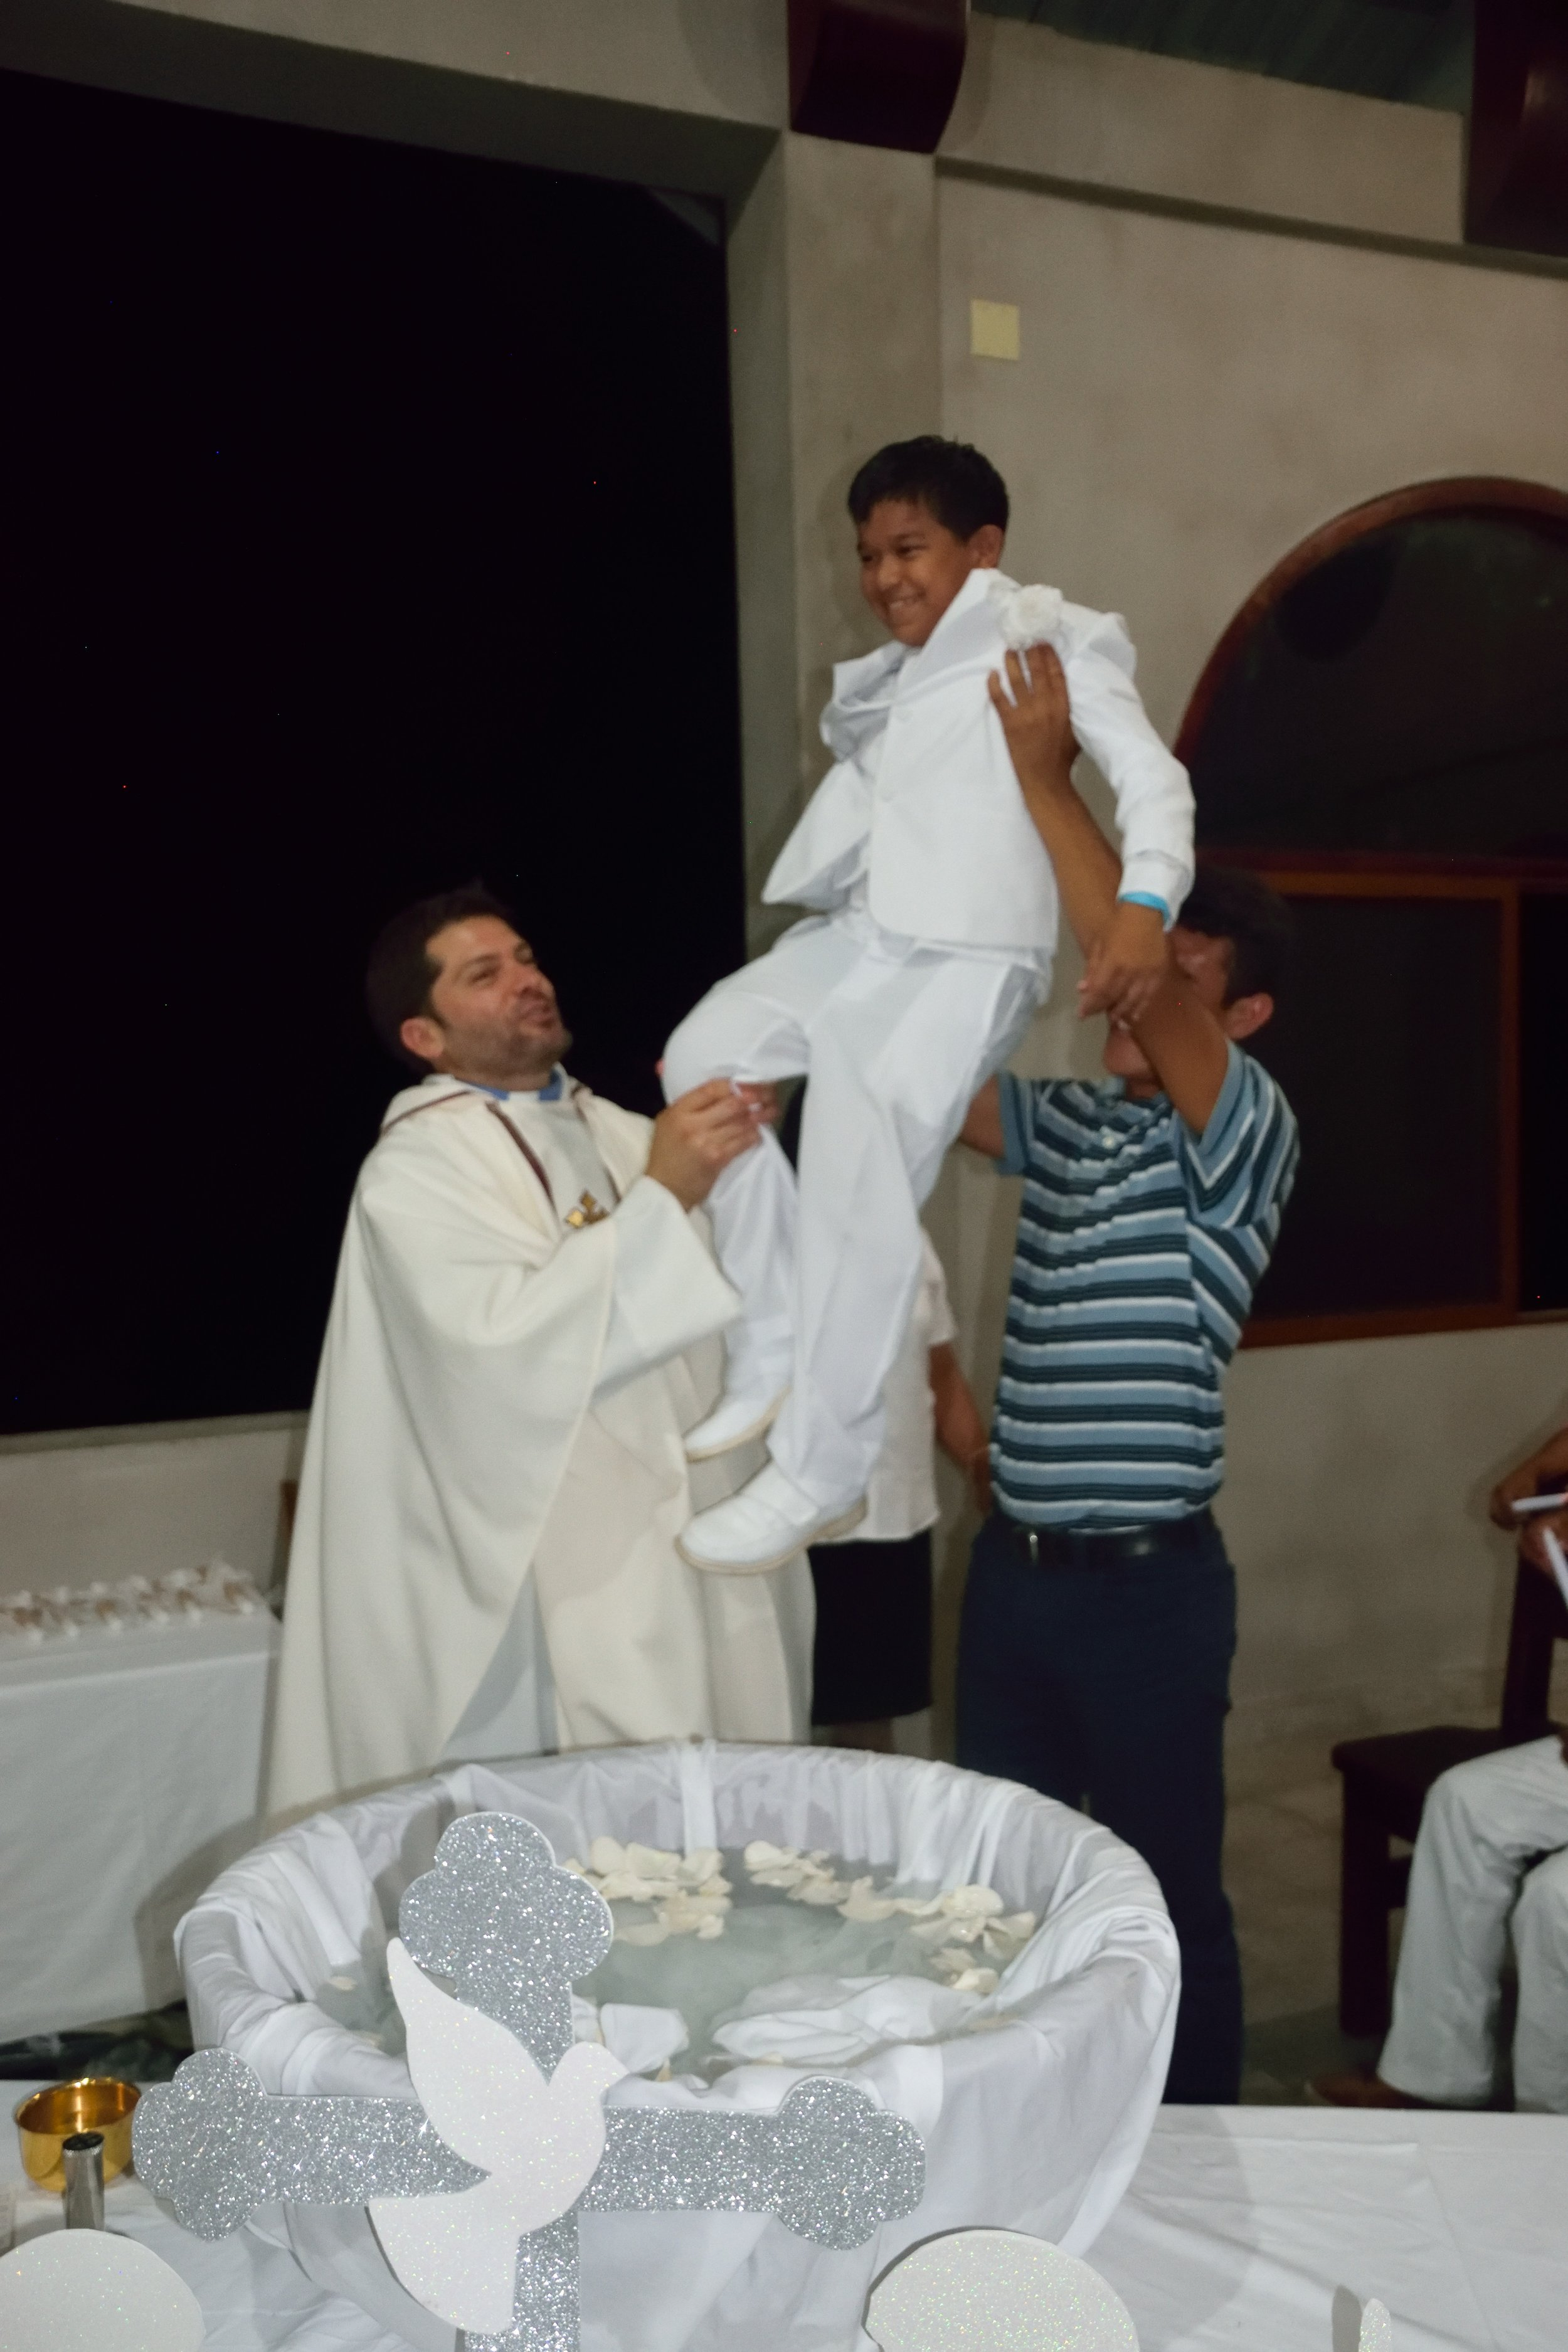 Alanzo, lifted up by Padre Patricio and one of the older boys he chose to be his godfather, following his baptism this year during 'Semana Santa' (Holy Week).